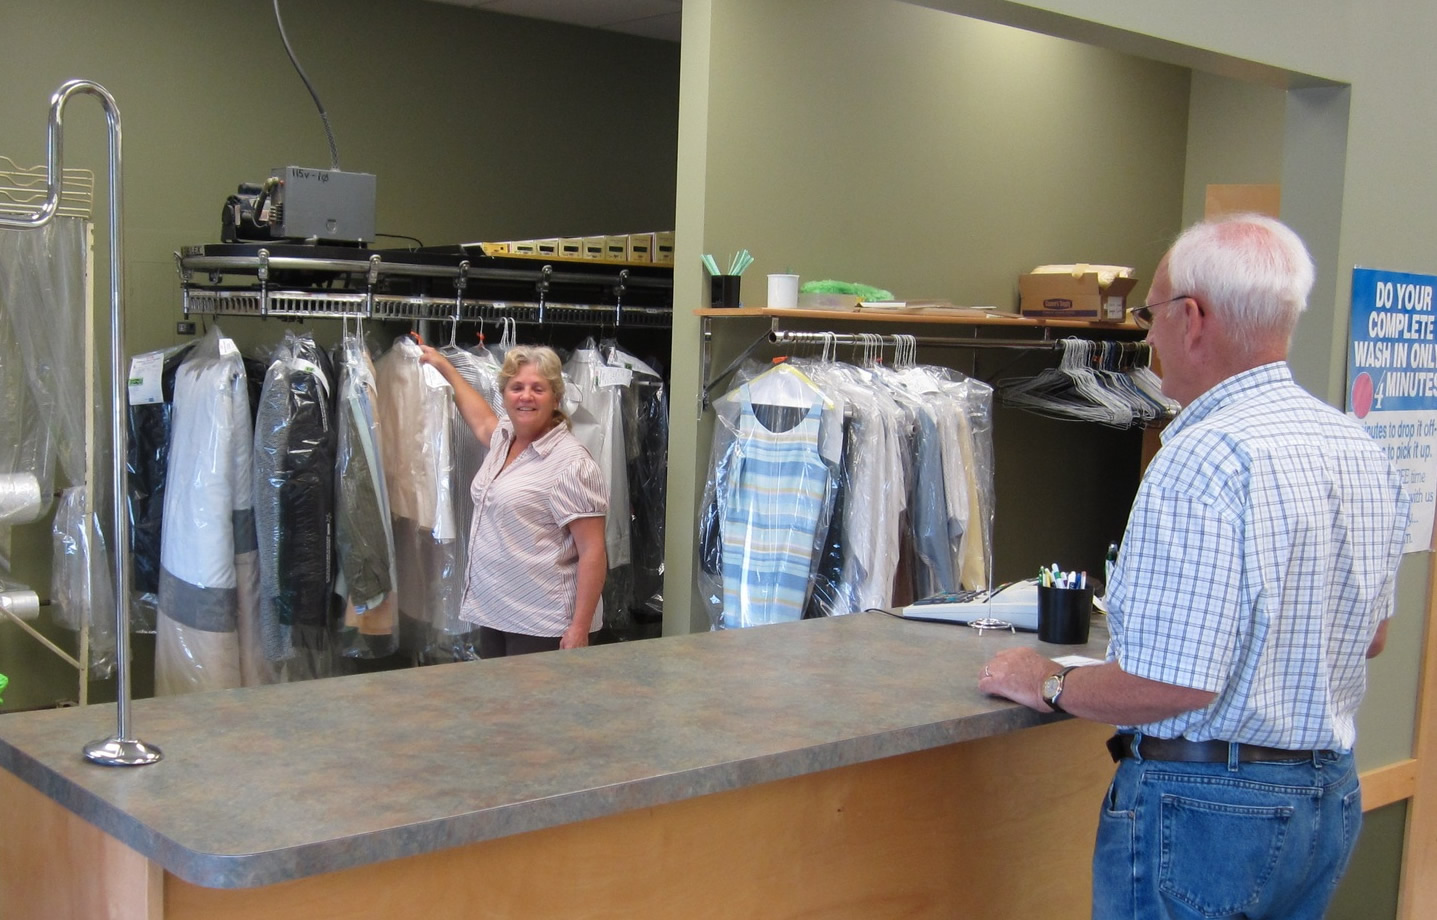 Willette S Home Laundry Service Counter We Offer Dry Cleaning